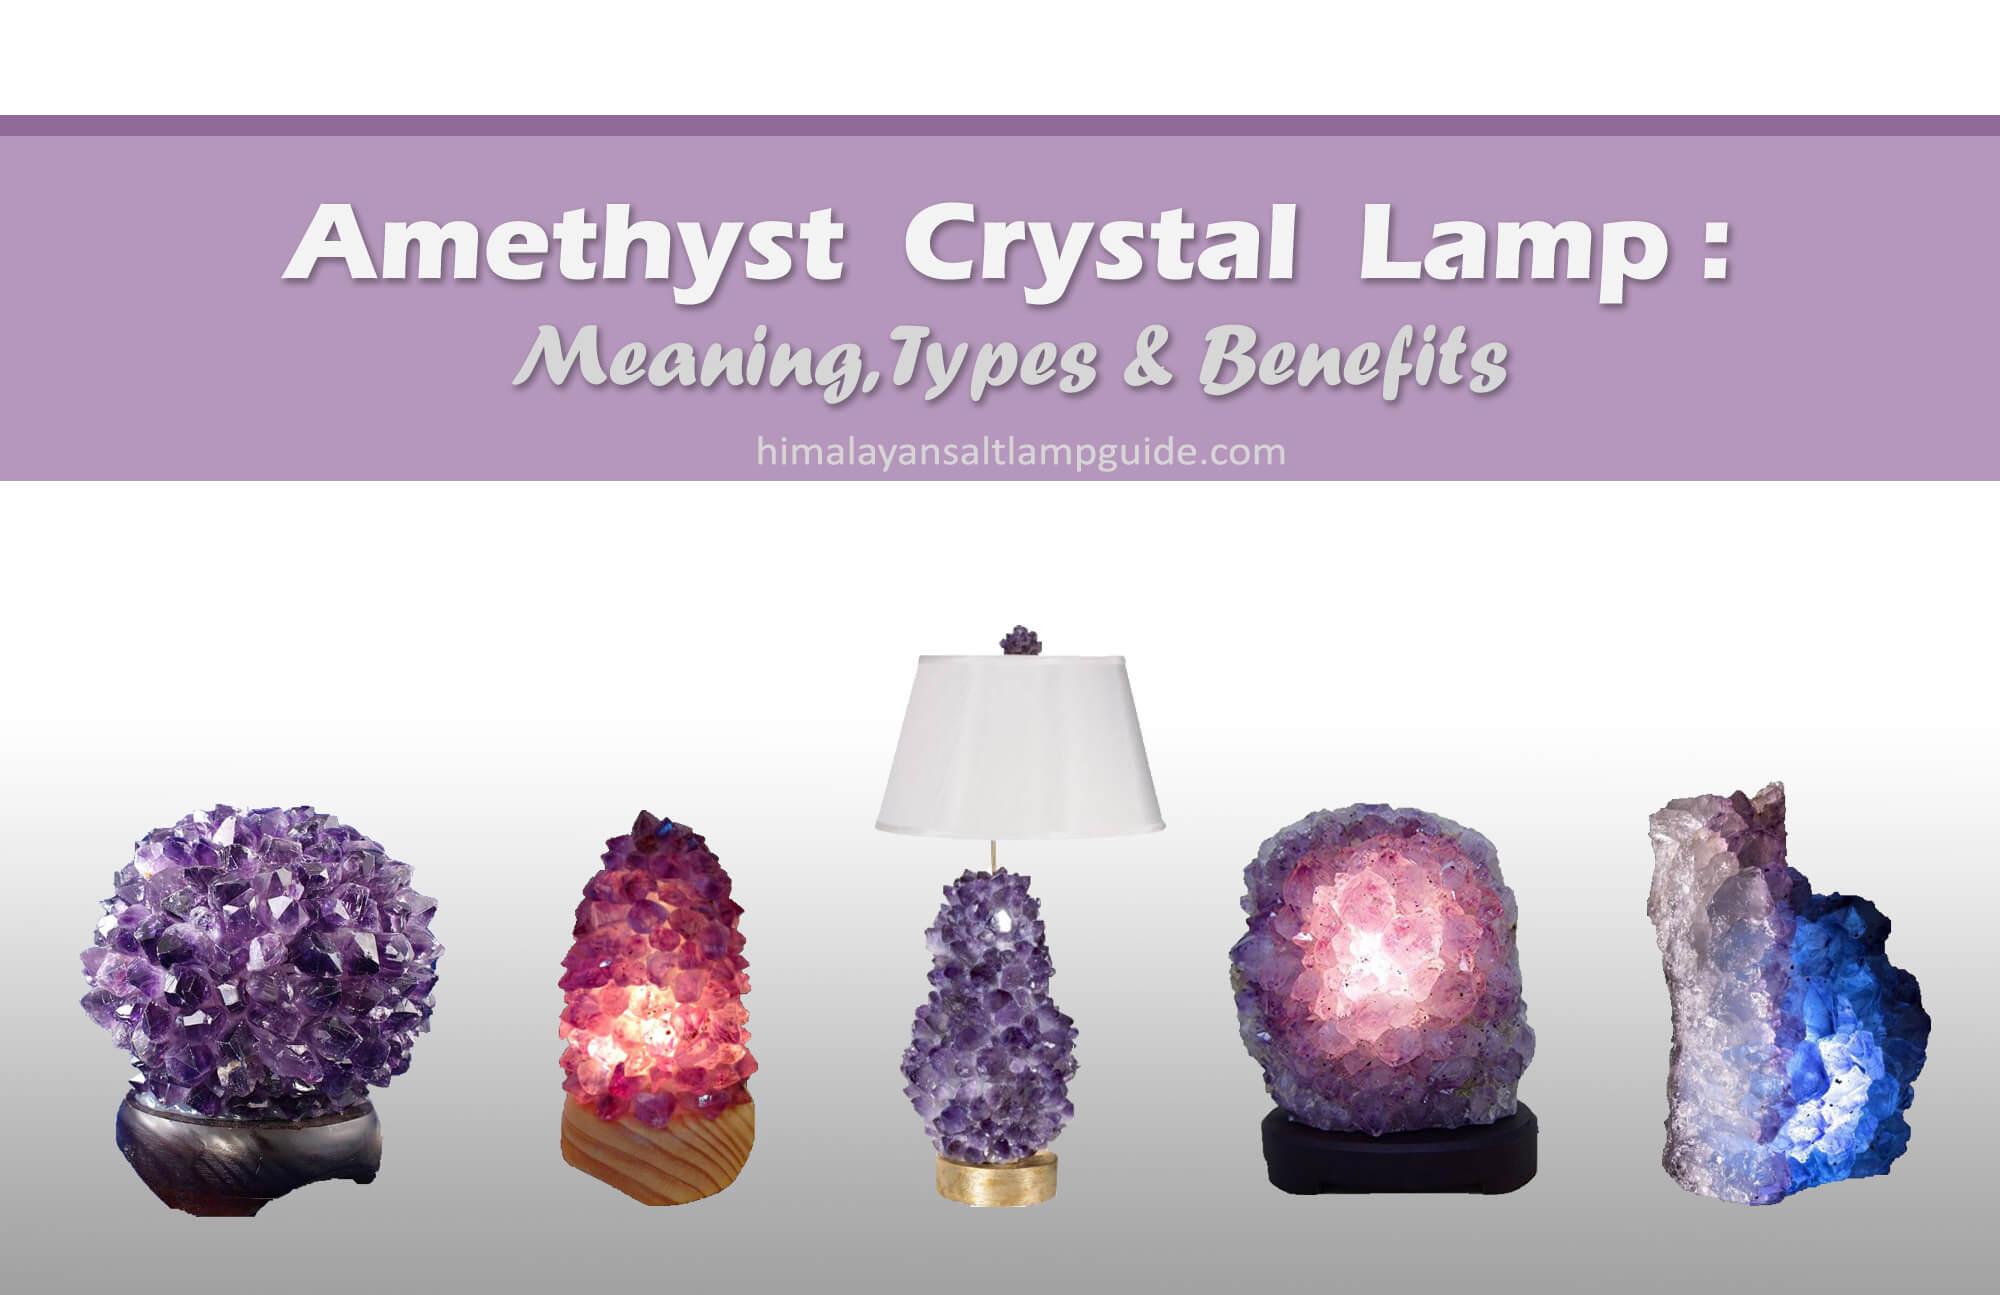 Benefits of Amethyst Lamp - Cluster Lamp